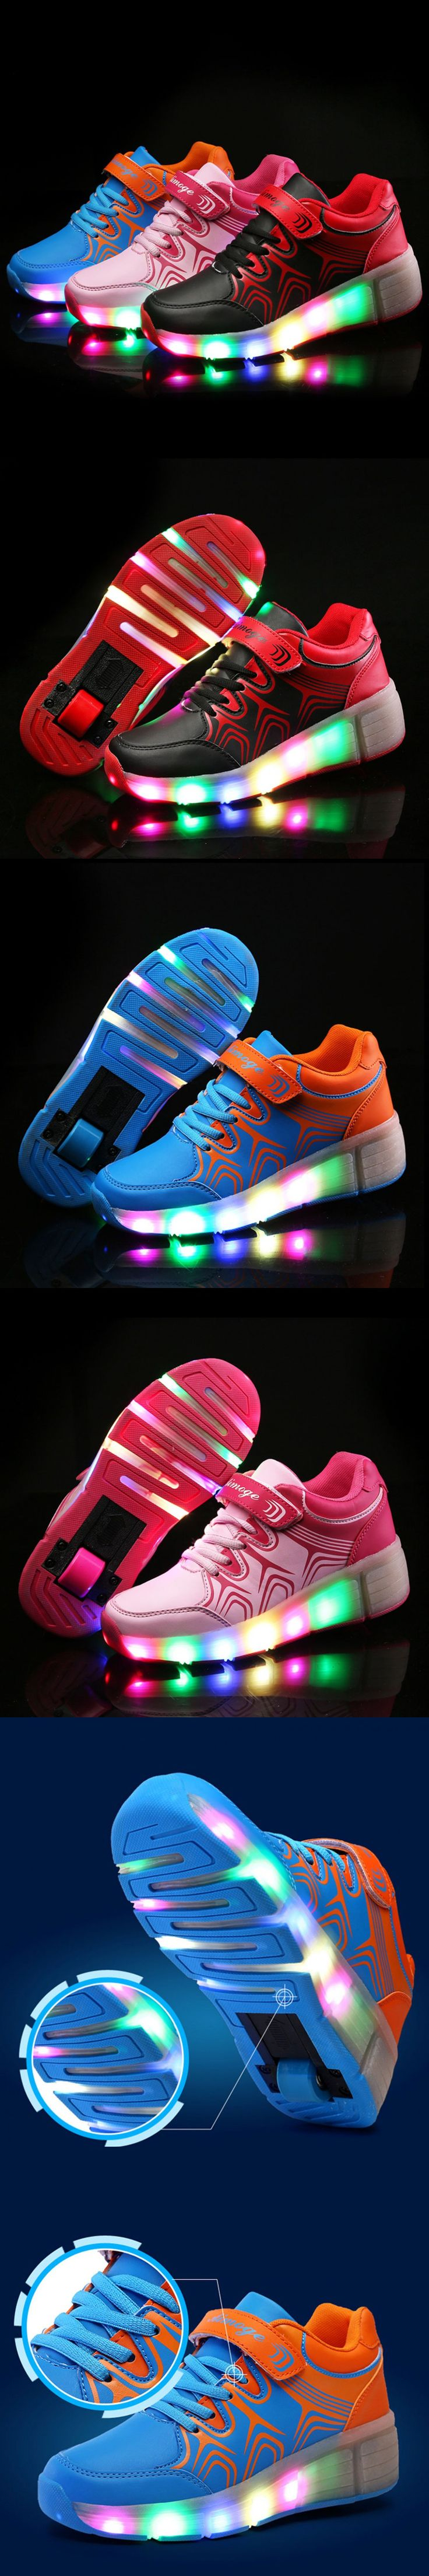 Roller shoes london - Children Wheely Shoes With Led Lights Kids Roller Shoes With Wheels Wear Resistant For Girls Boys Sneakers Zapatillas Con Ruedas